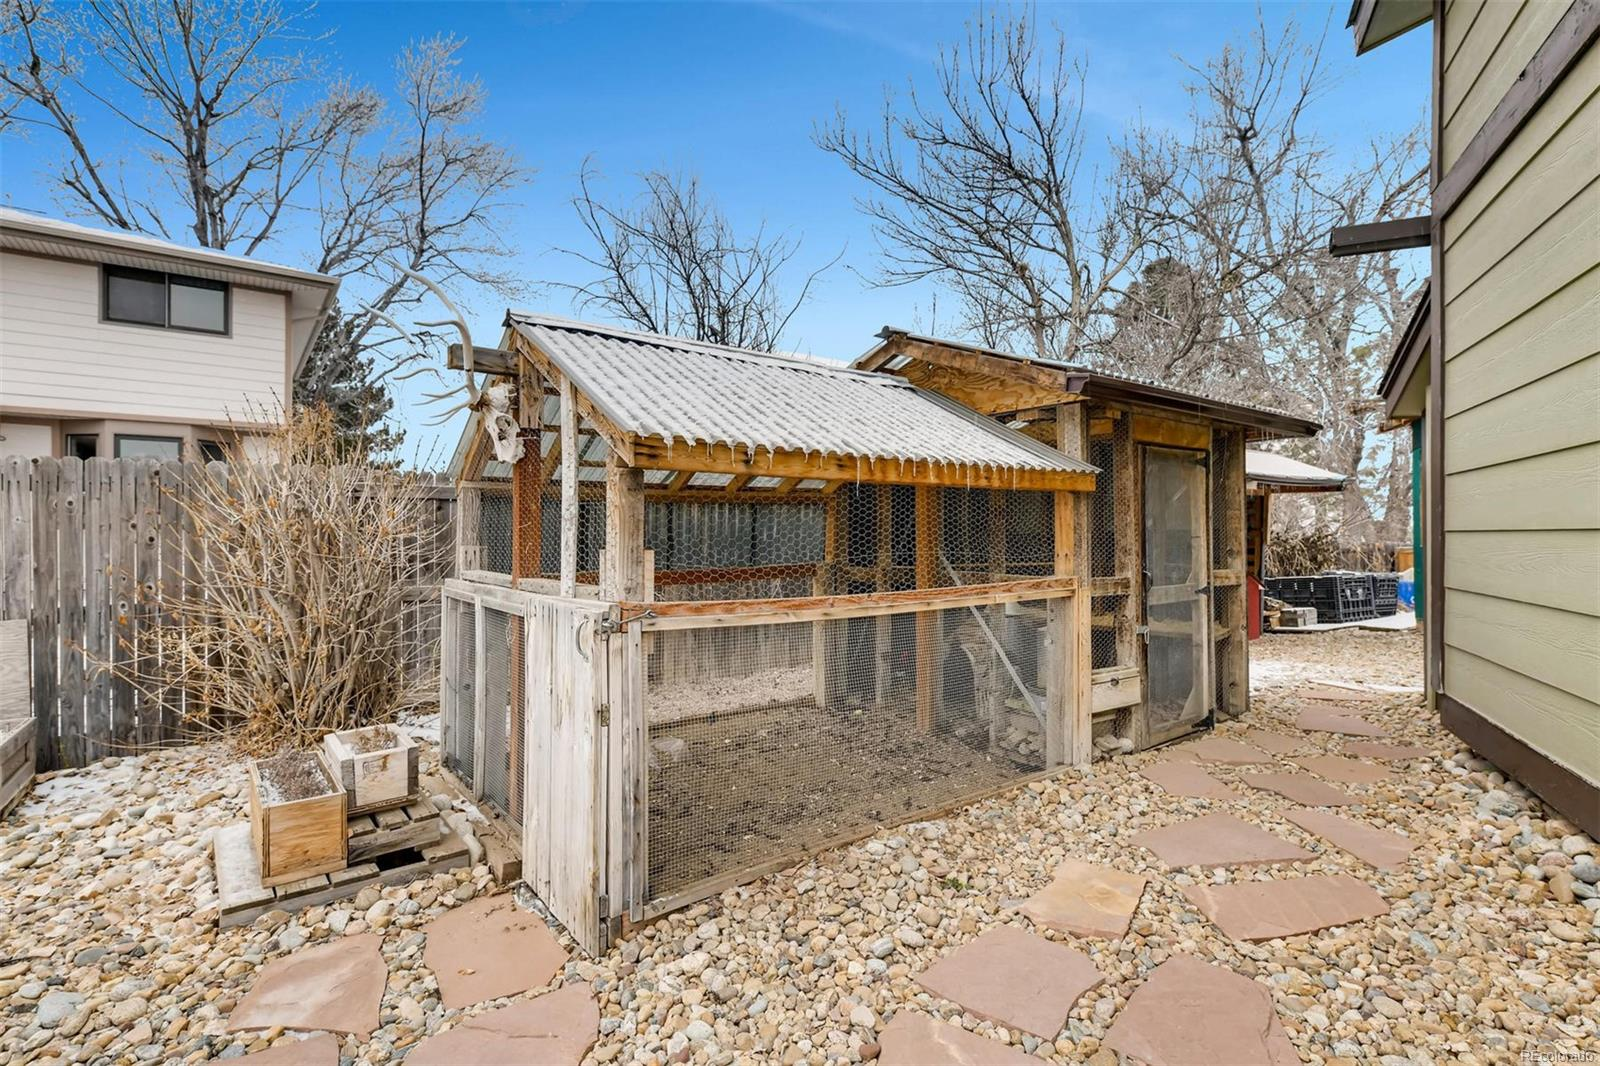 Like Fresh Eggs? Chicken Coop & Chickens Are Included!